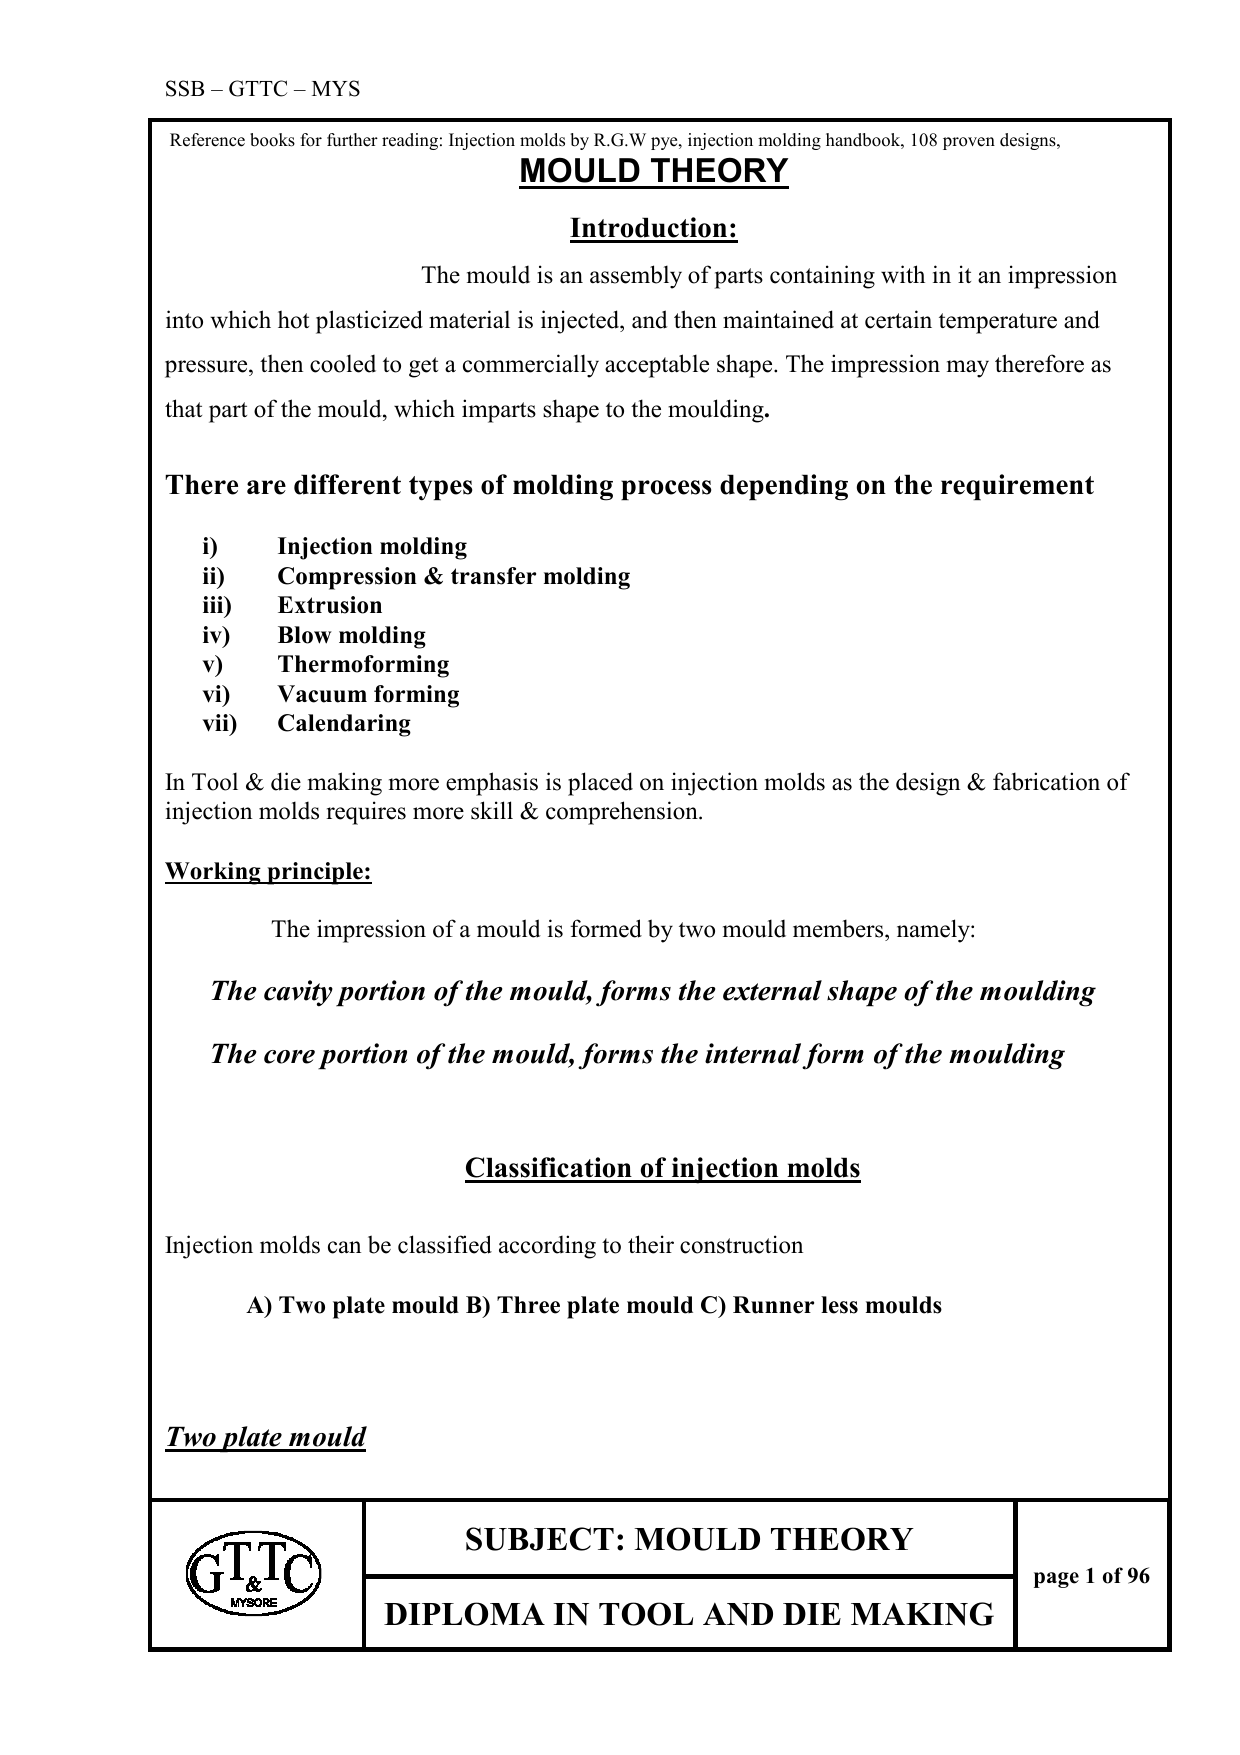 SUBJECT: MOULD THEORY DIPLOMA IN TOOL AND DIE MAKING